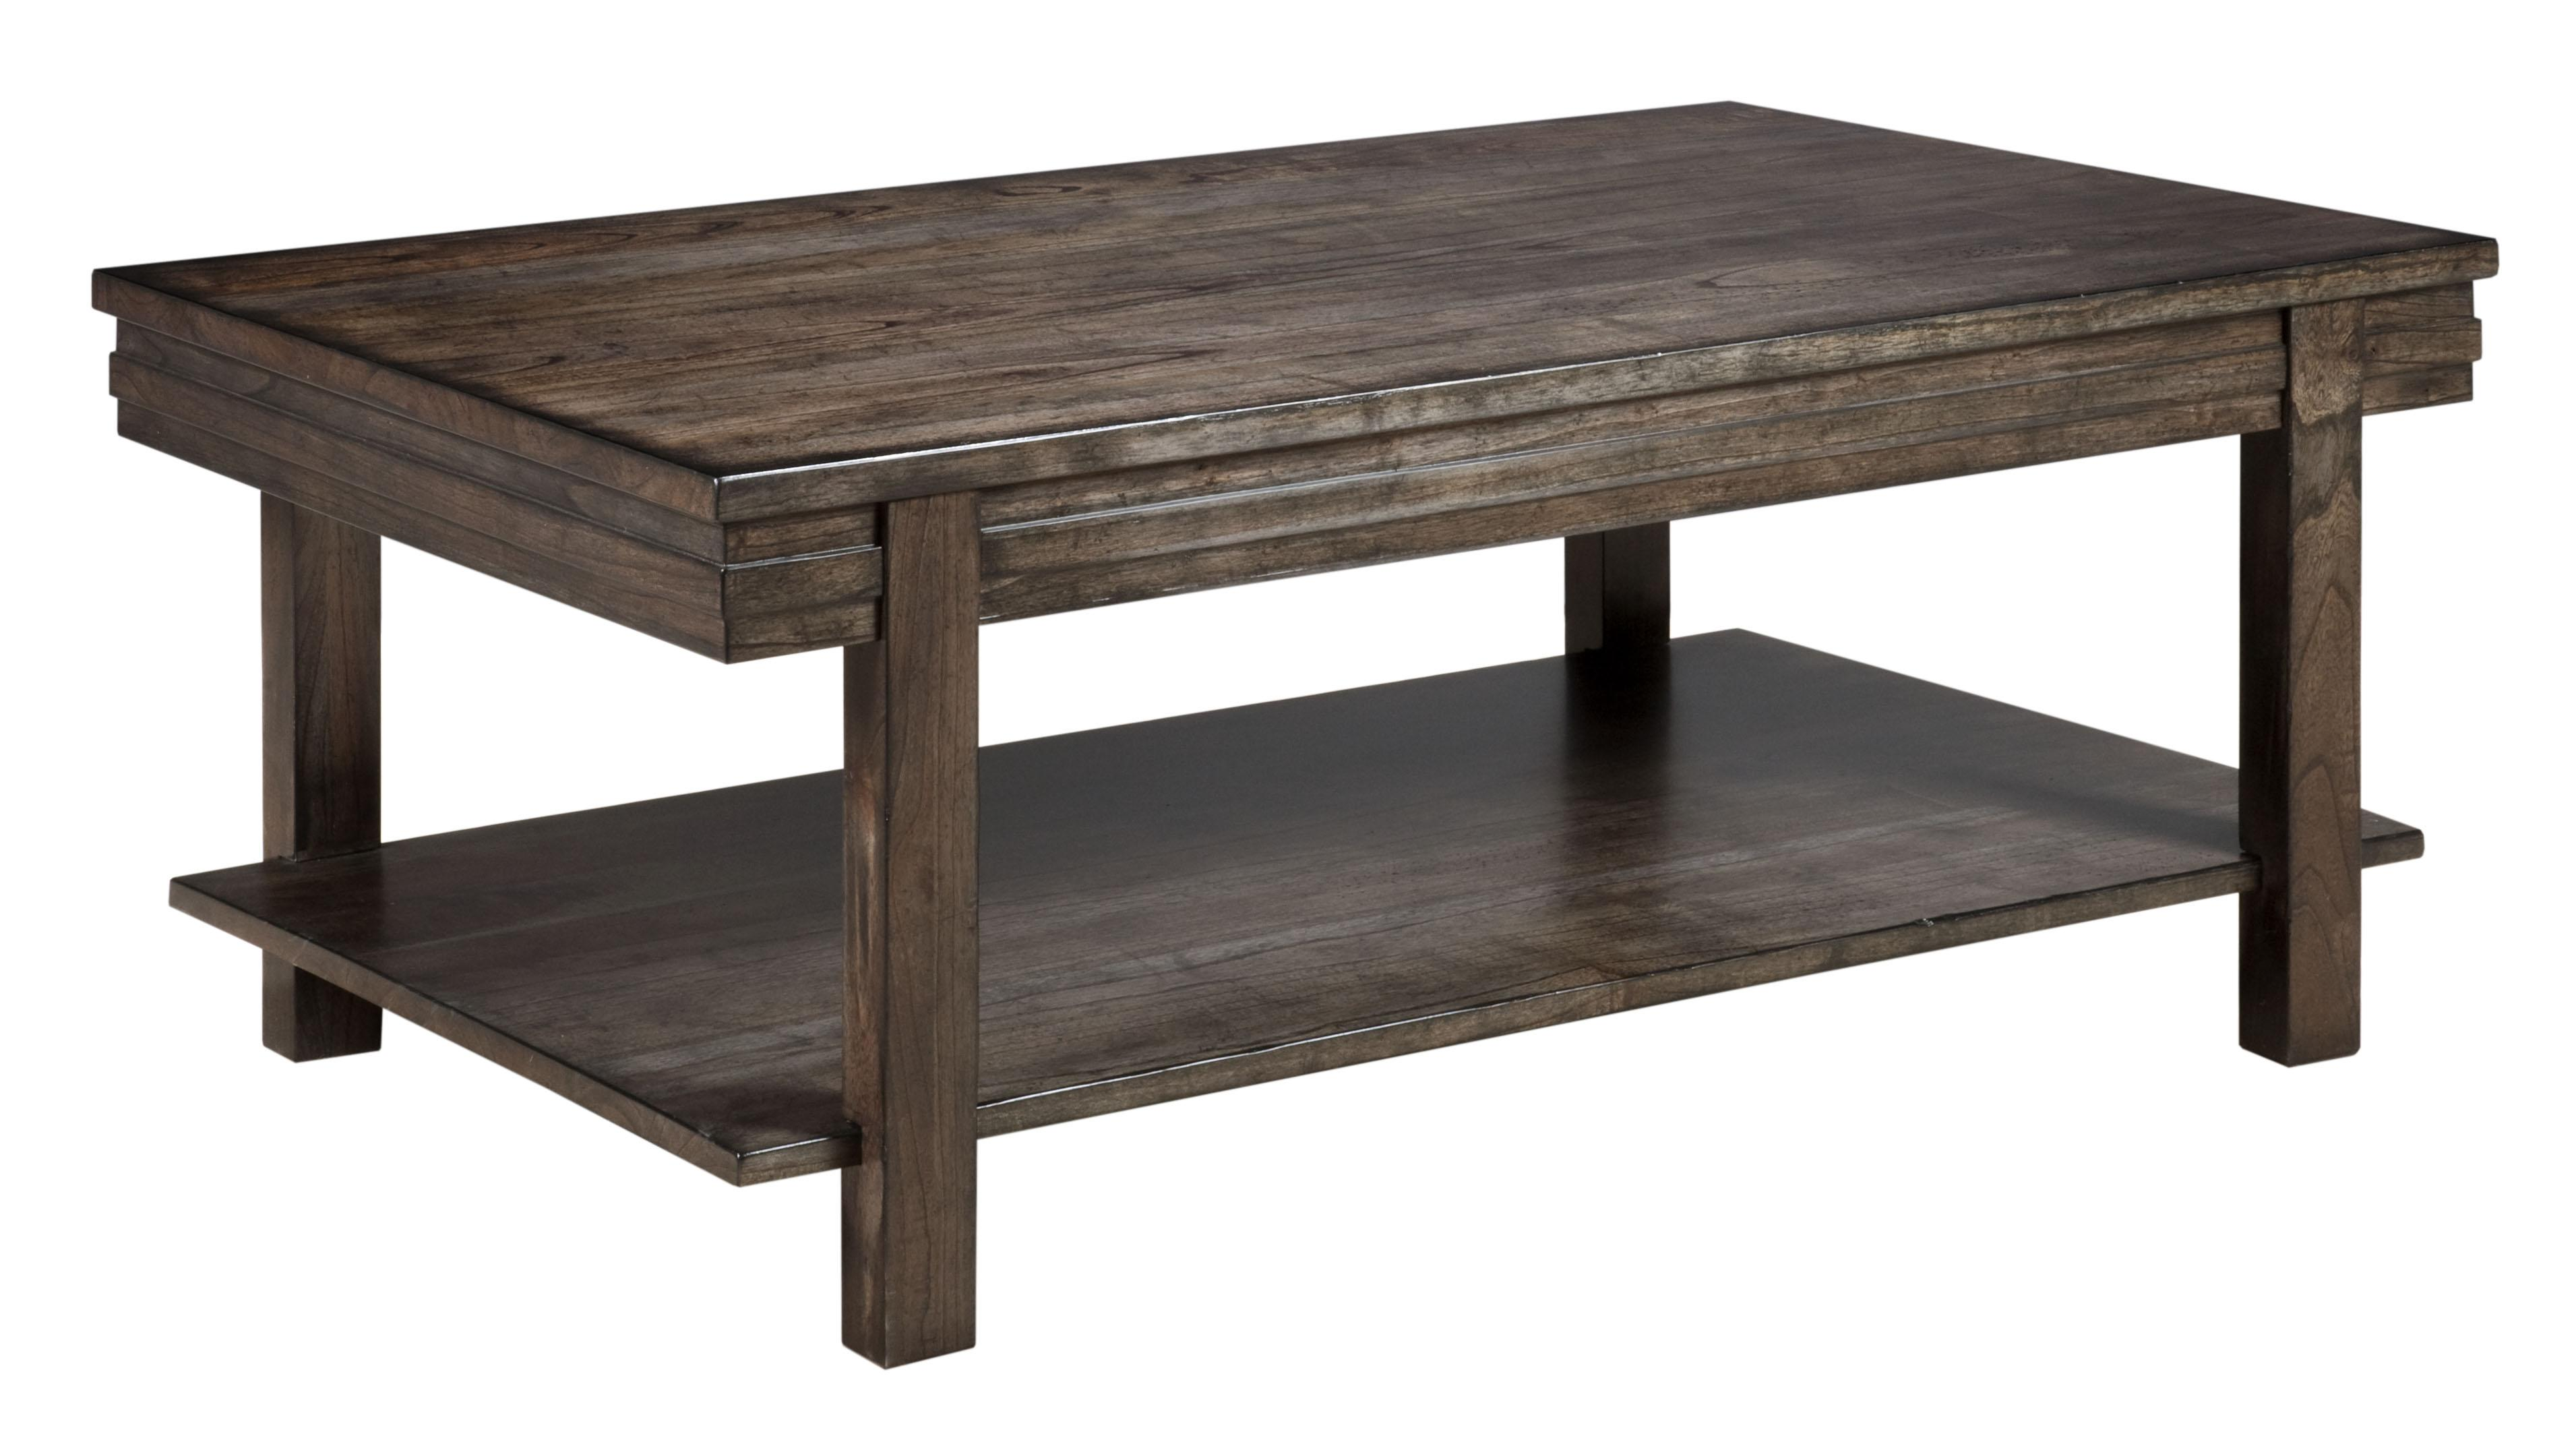 Contemporary Cantilever Cocktail Table with Grooved Mouldings and